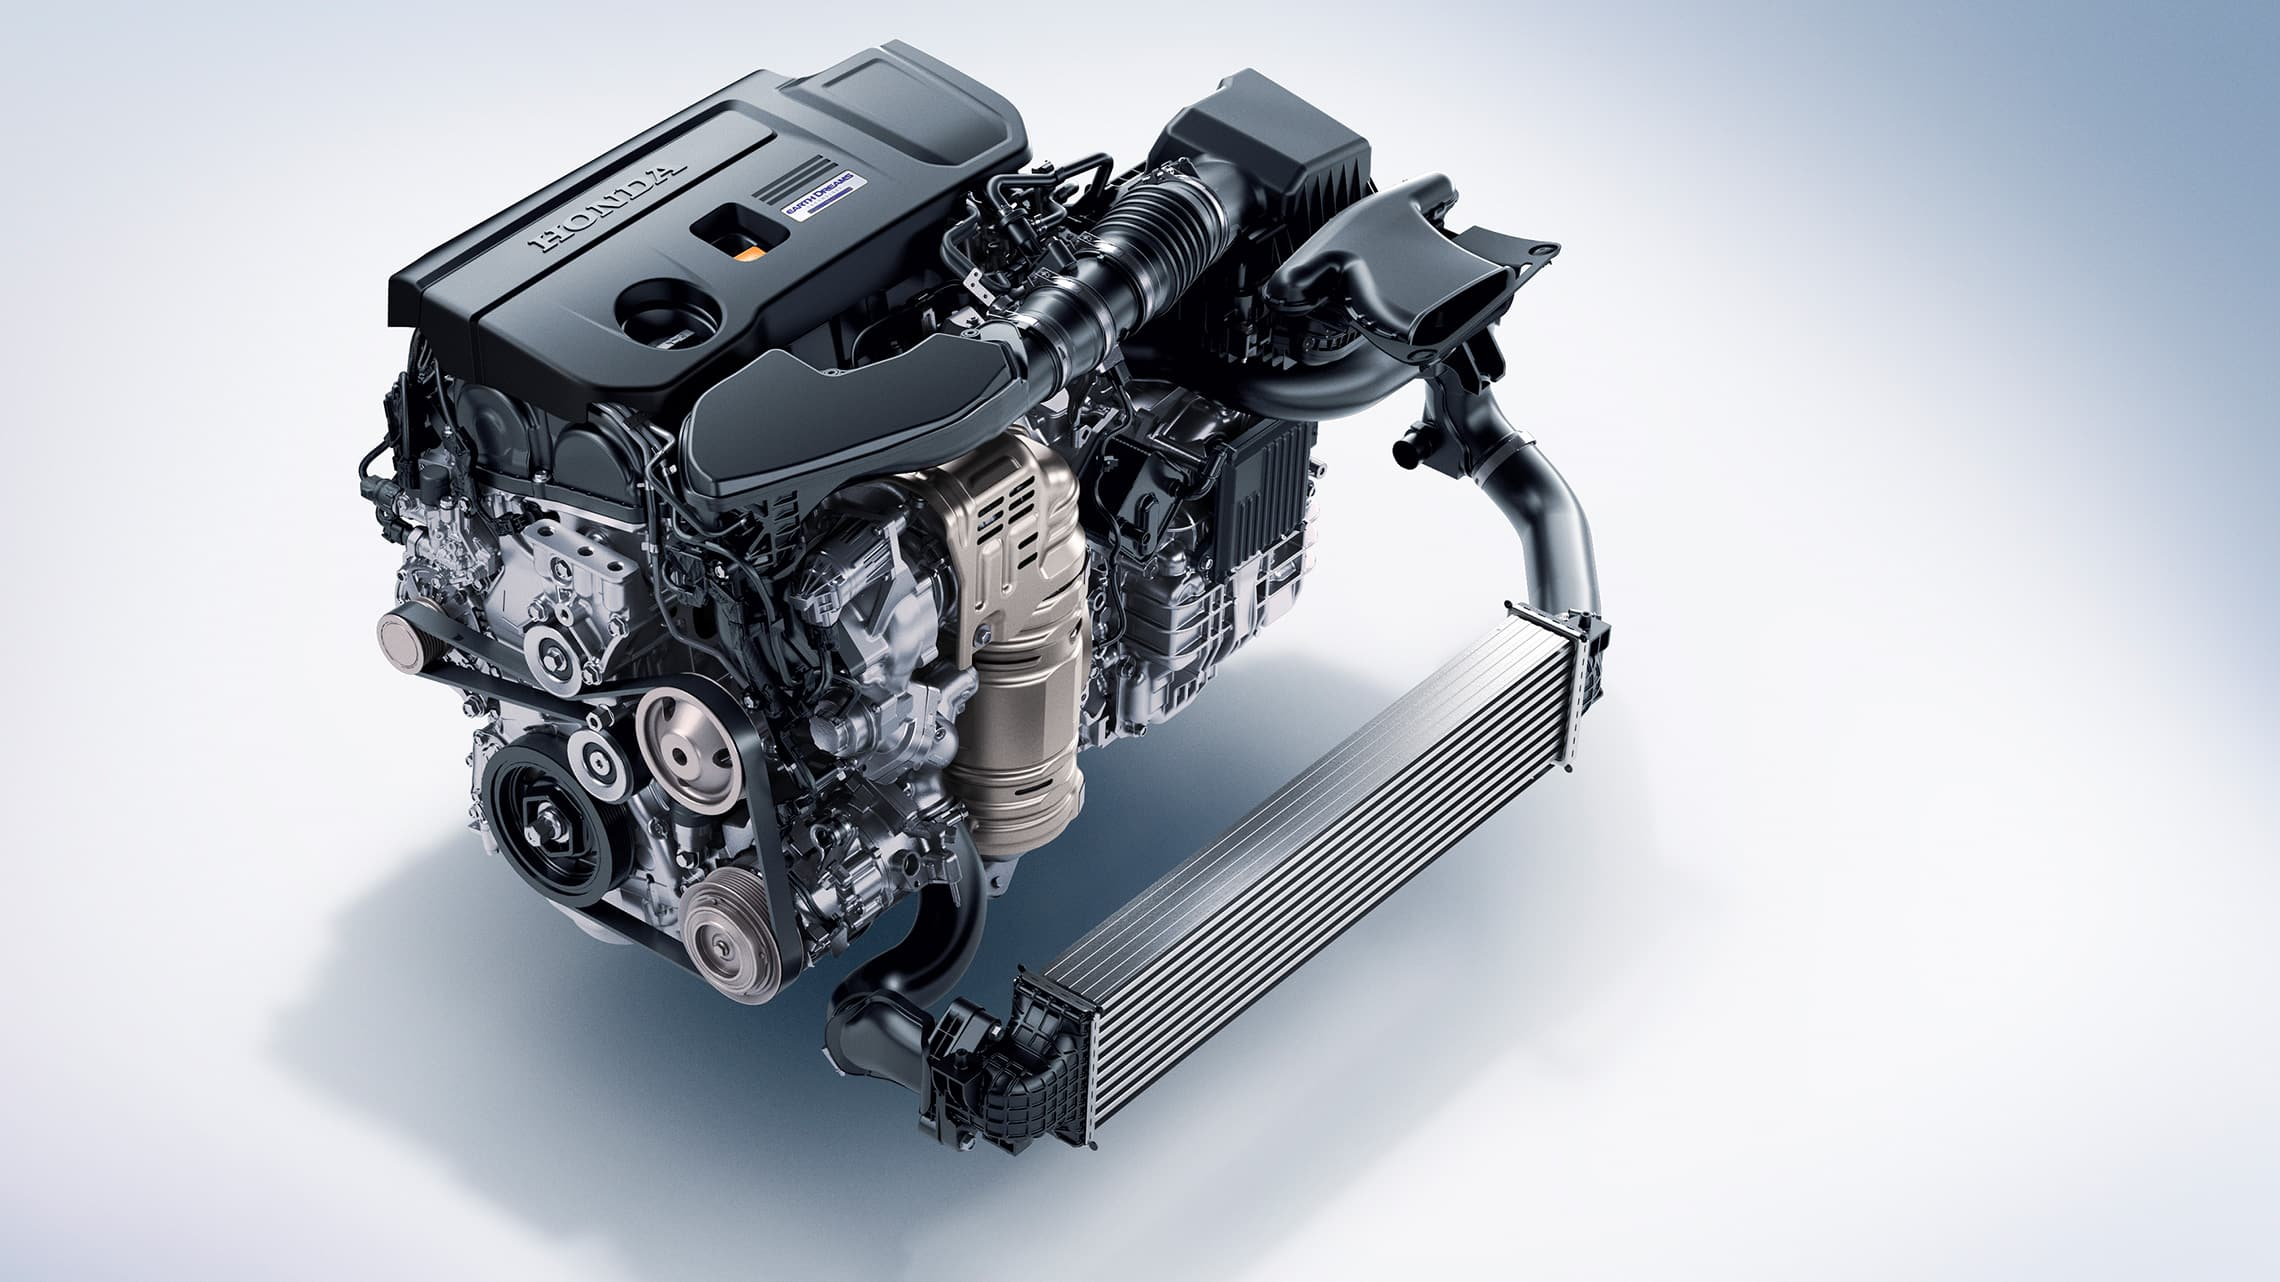 2.0-liter turbocharged engine detail on the 2021 Honda Accord.